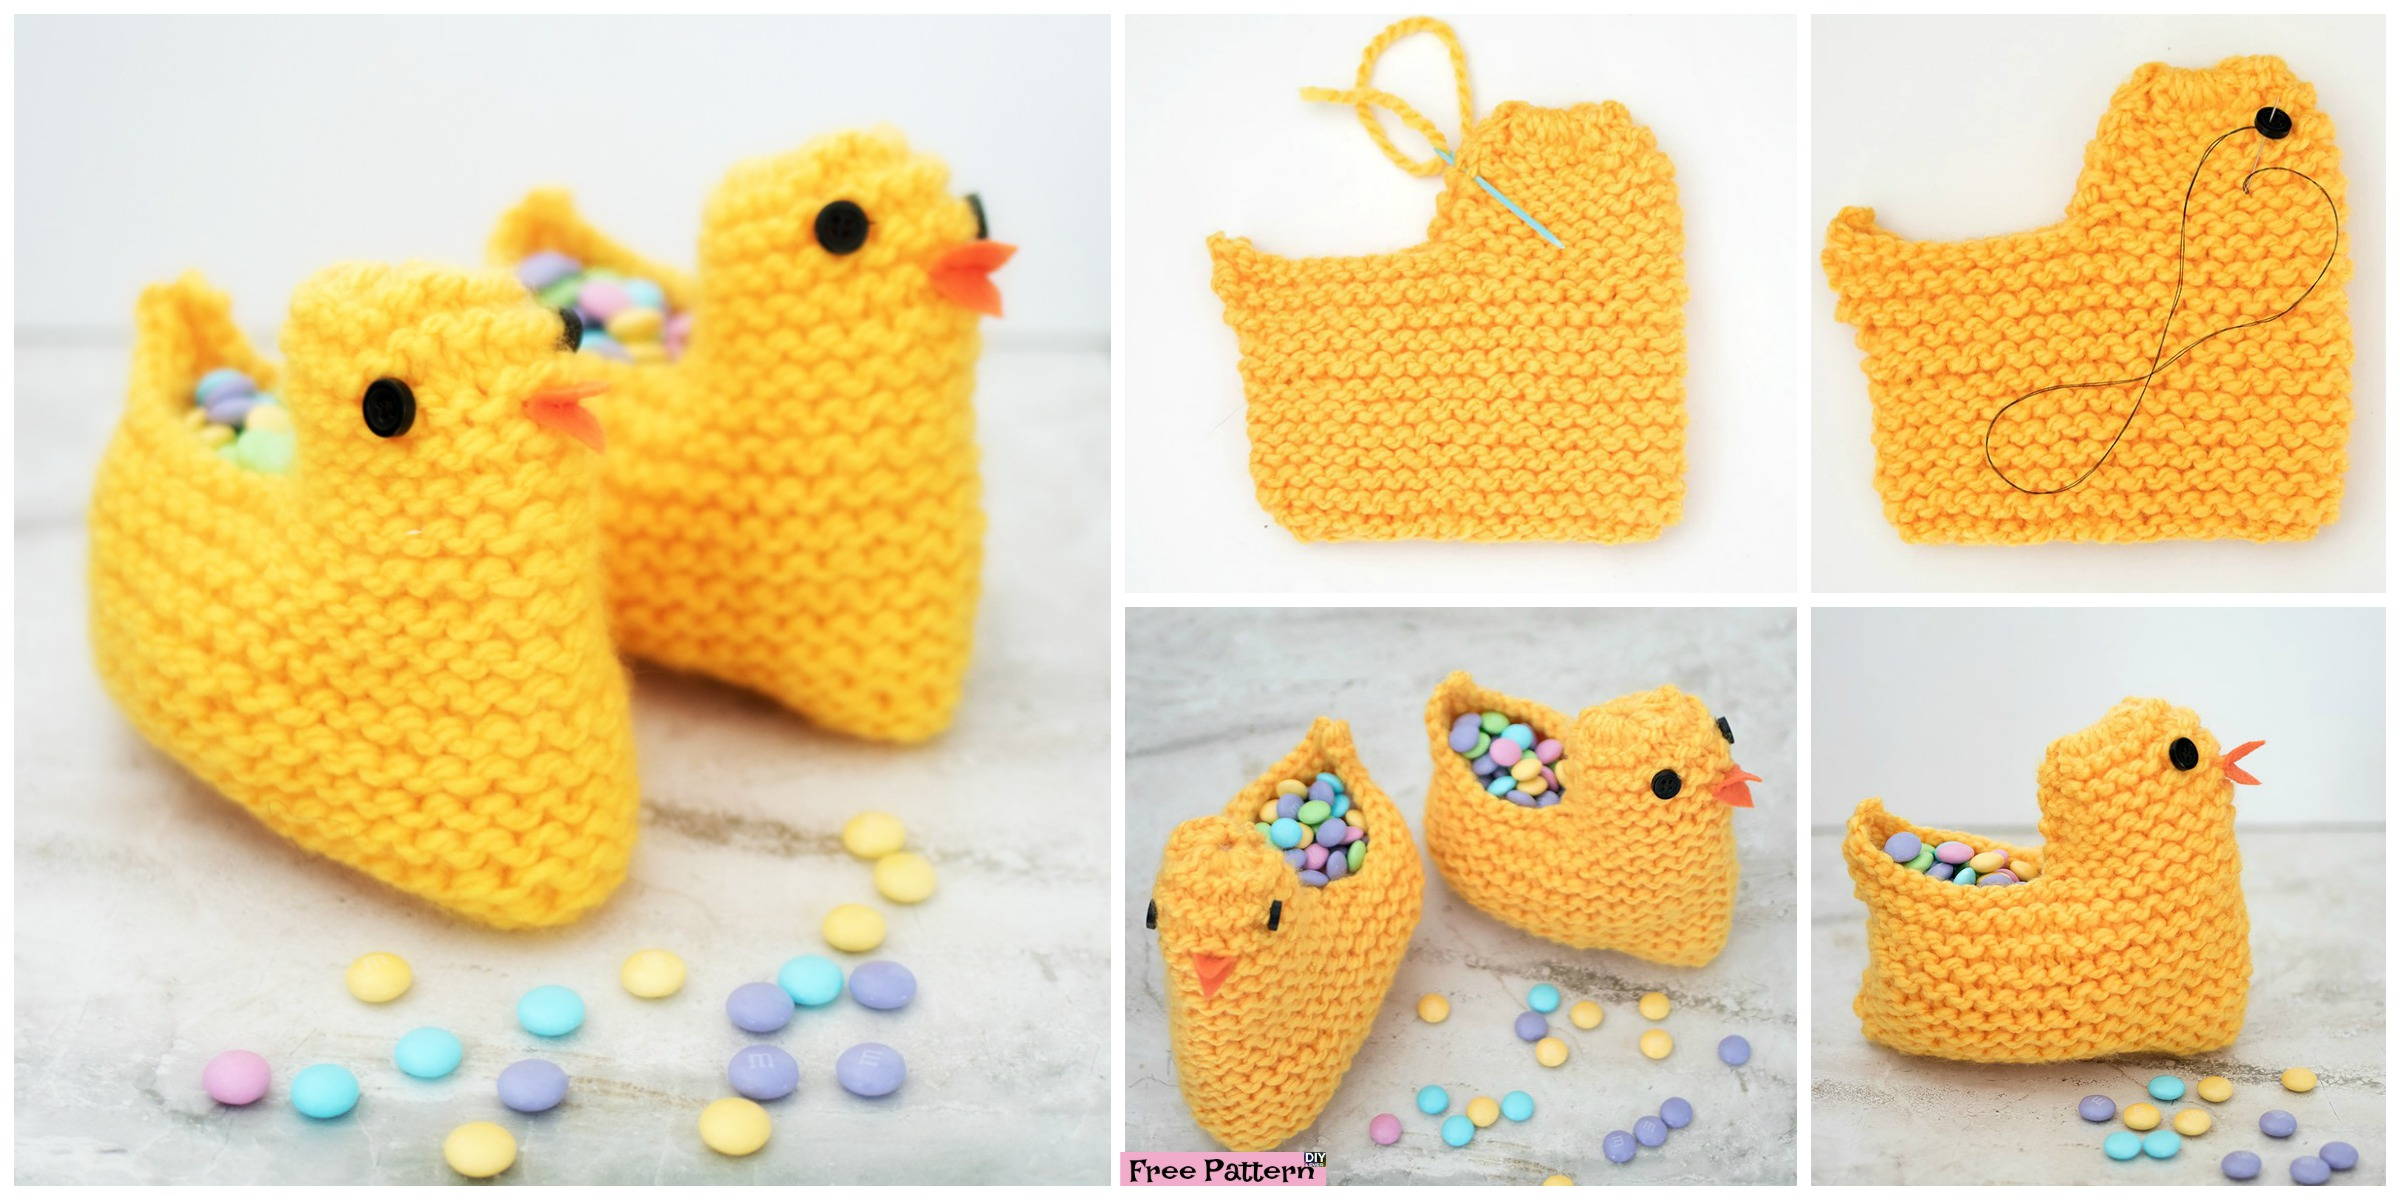 diy4ever- Cute Knit Chick Basket - Free Pattern